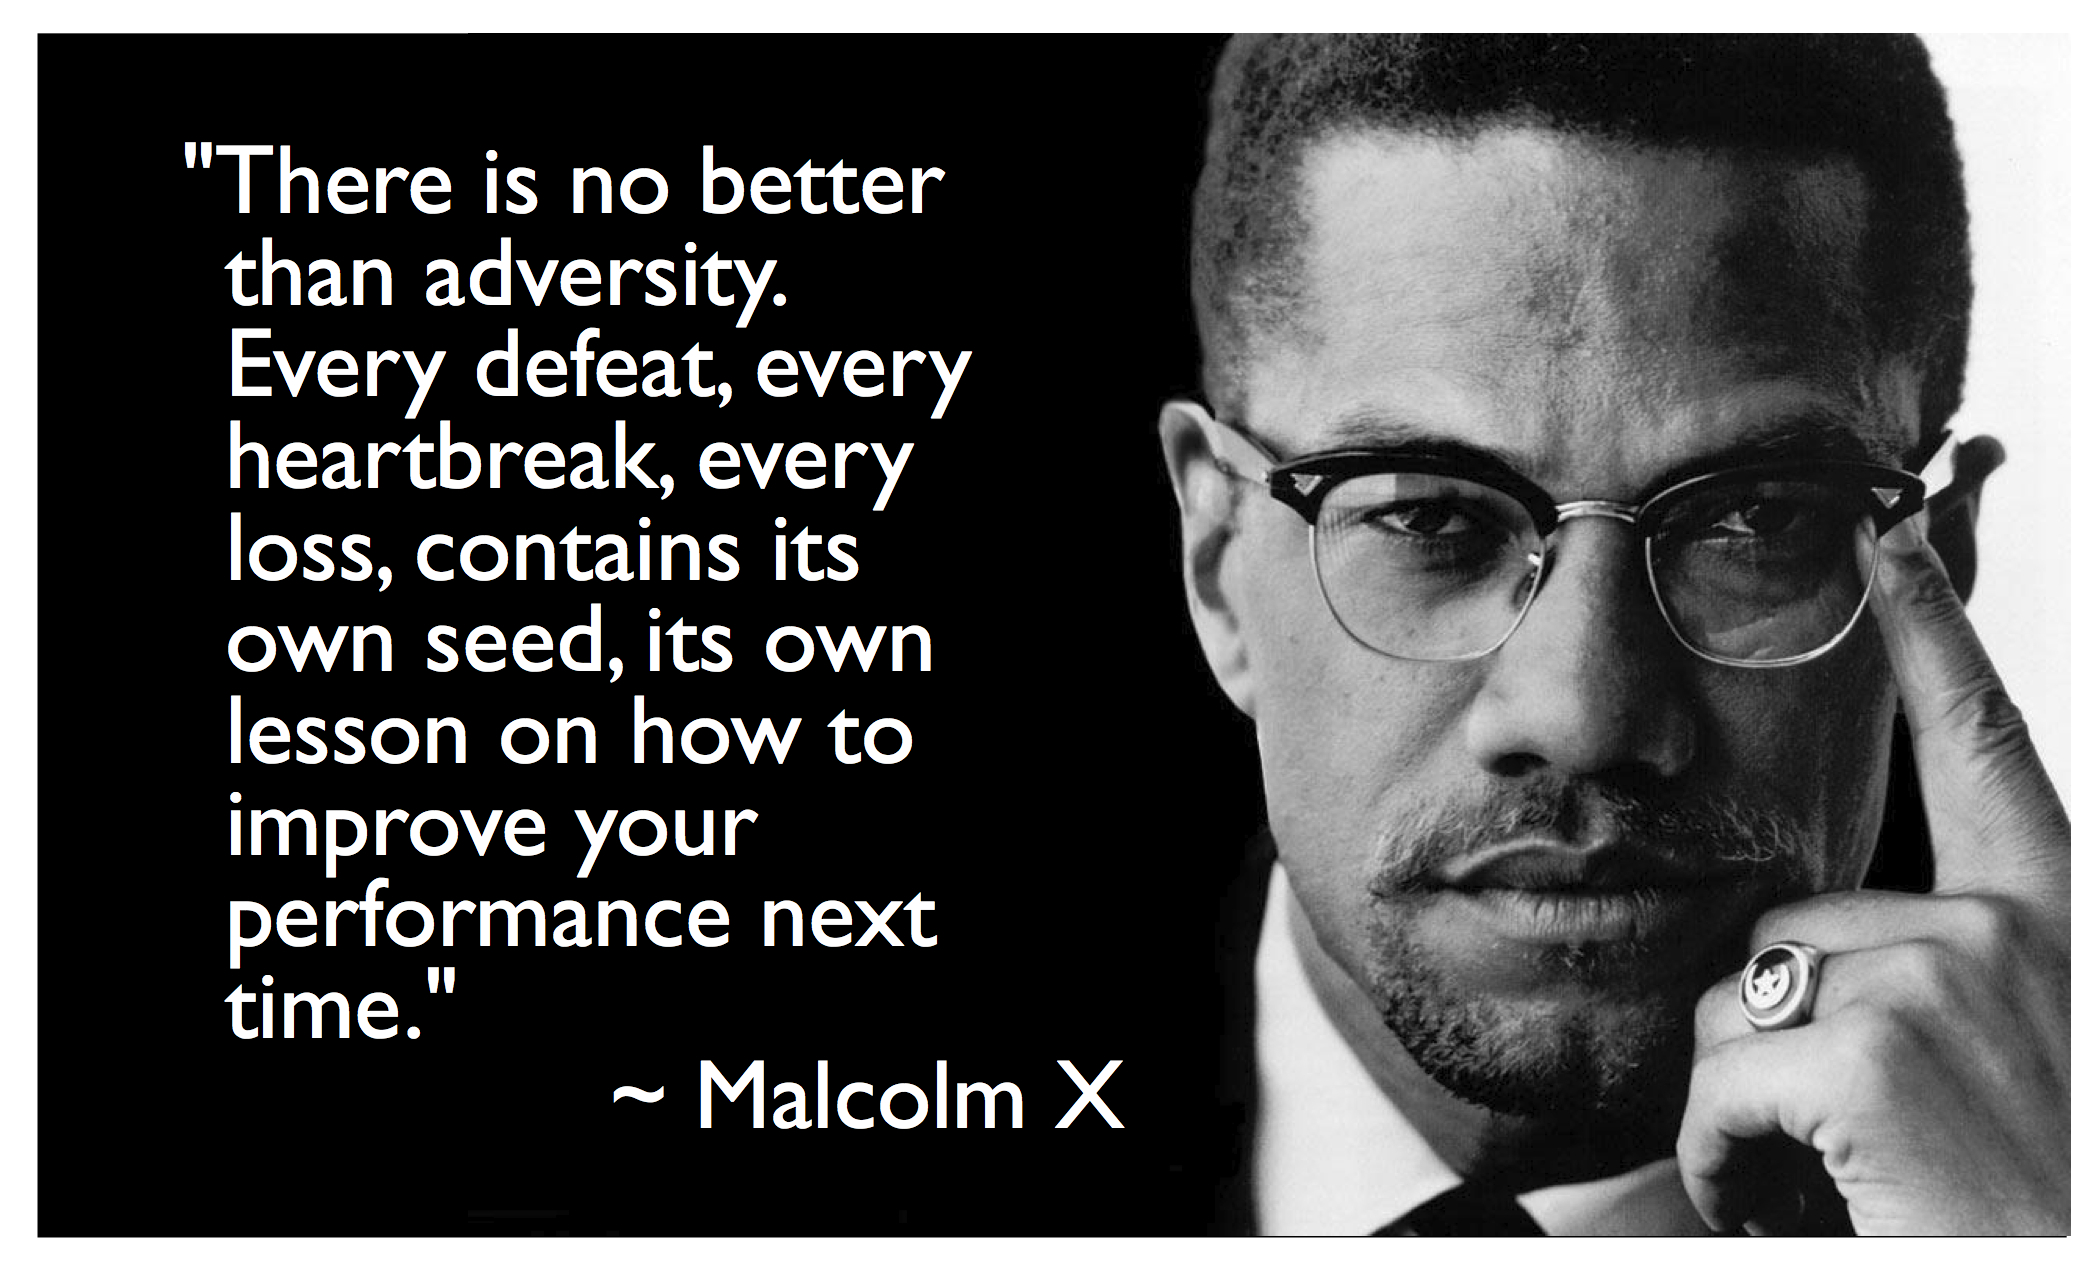 Malcolm X Education Quote Pinterest thumbnail